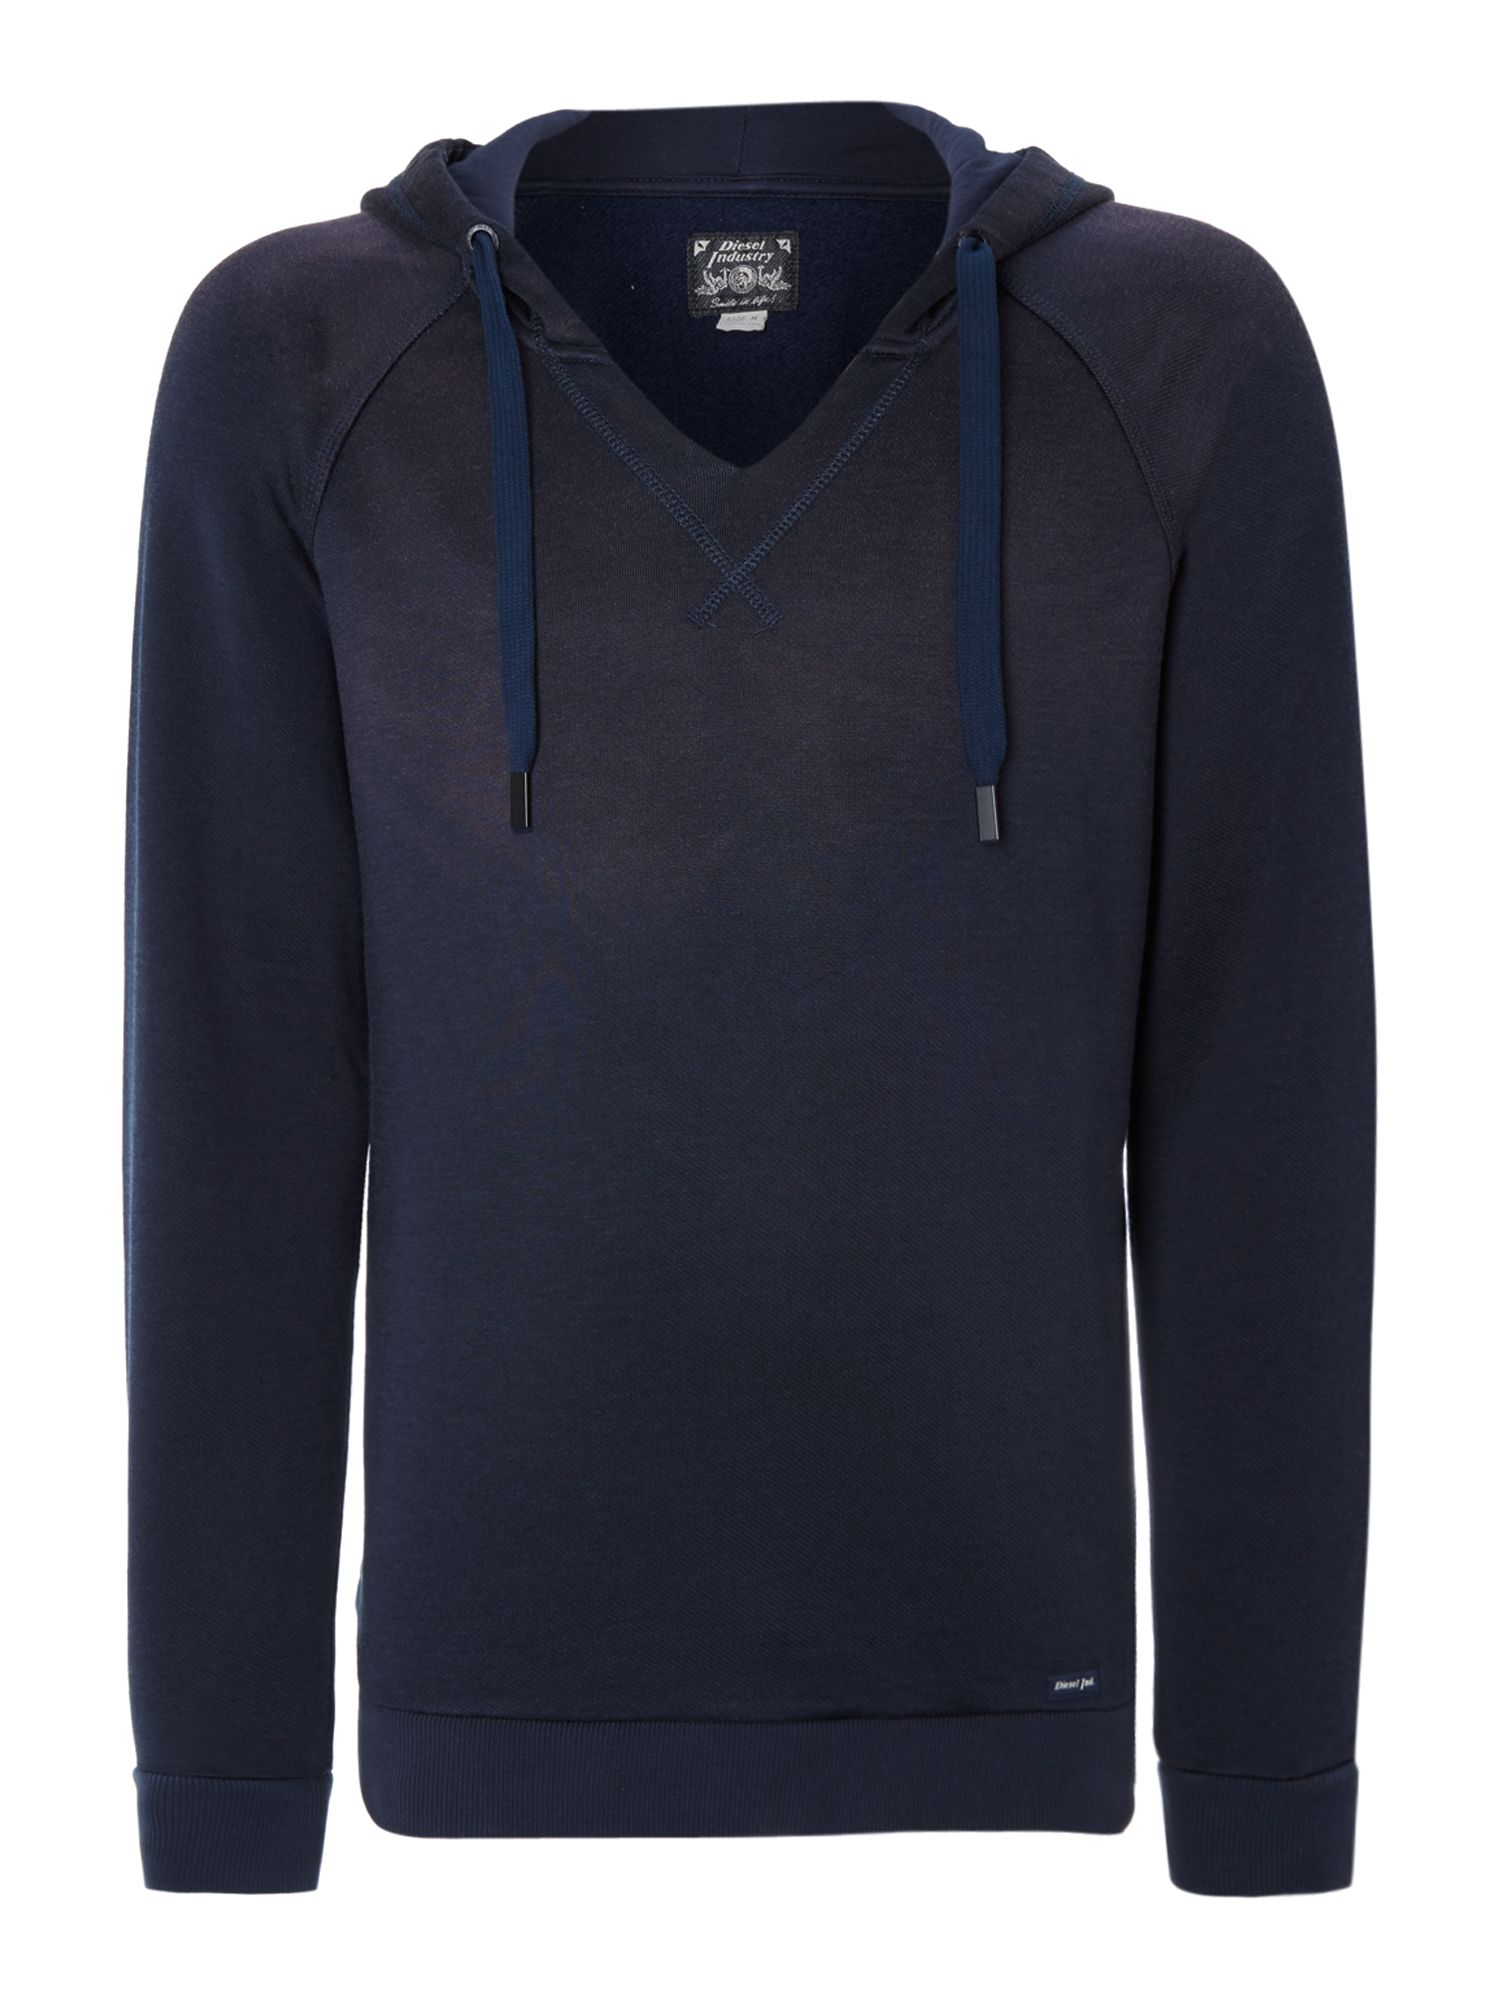 Open neck hoody